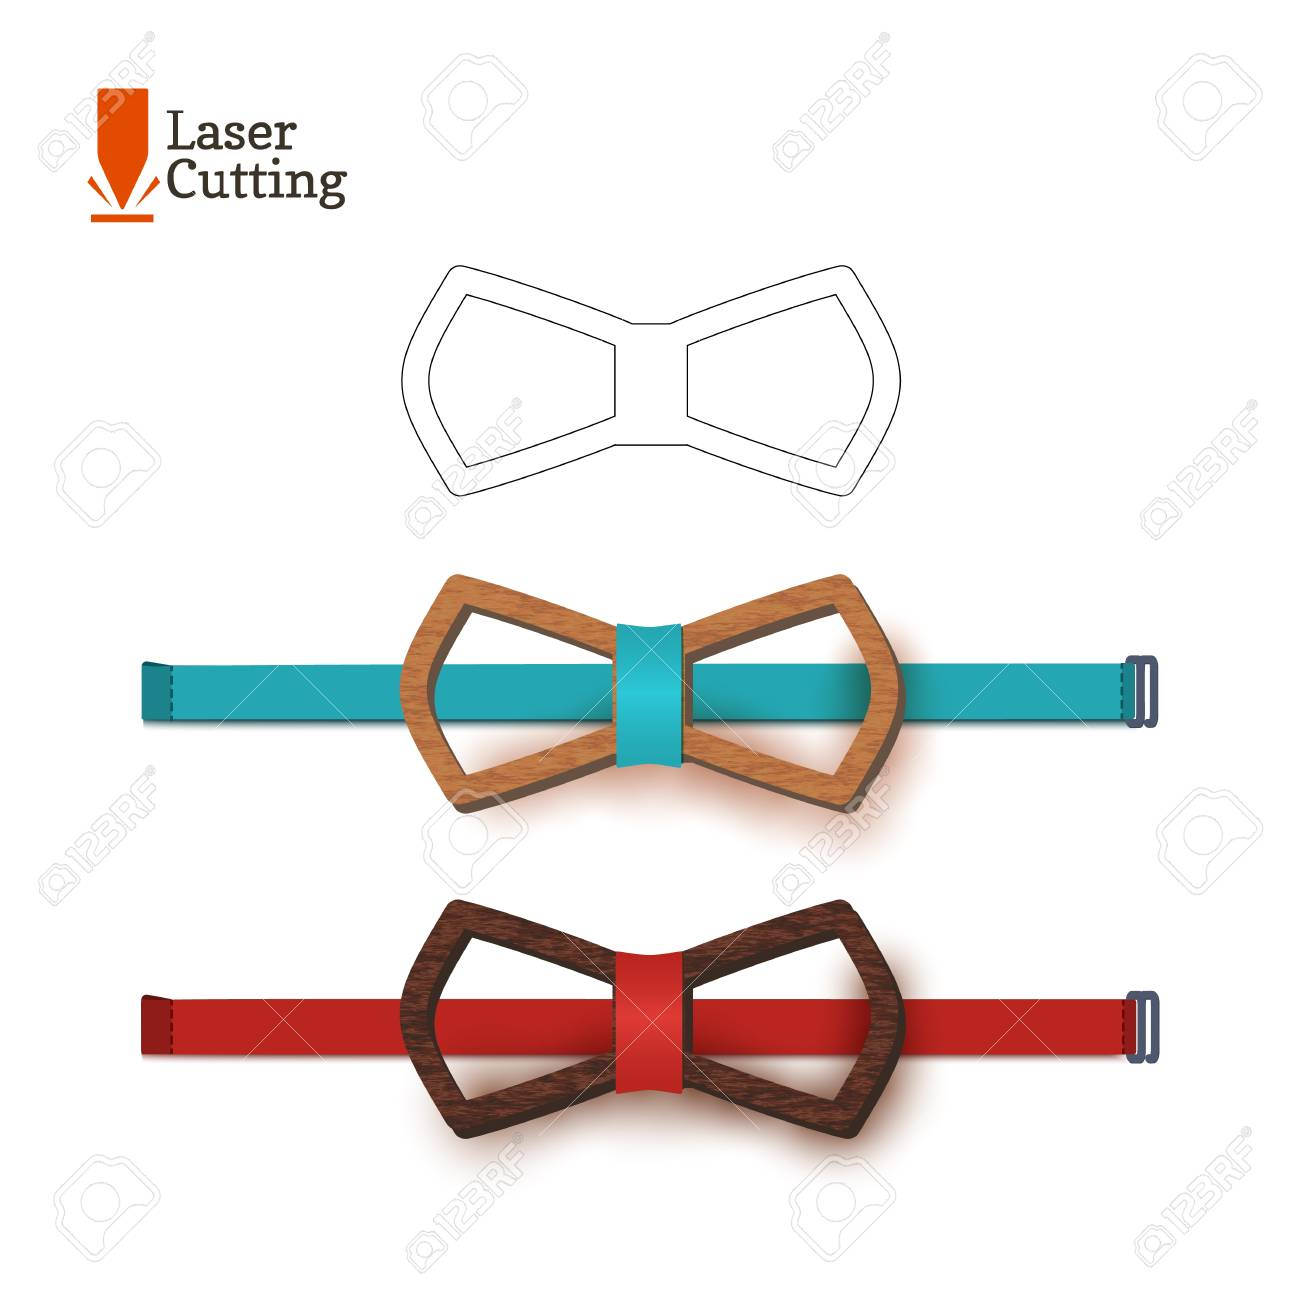 laser cut bow tie template vector silhouette for cutting a bow